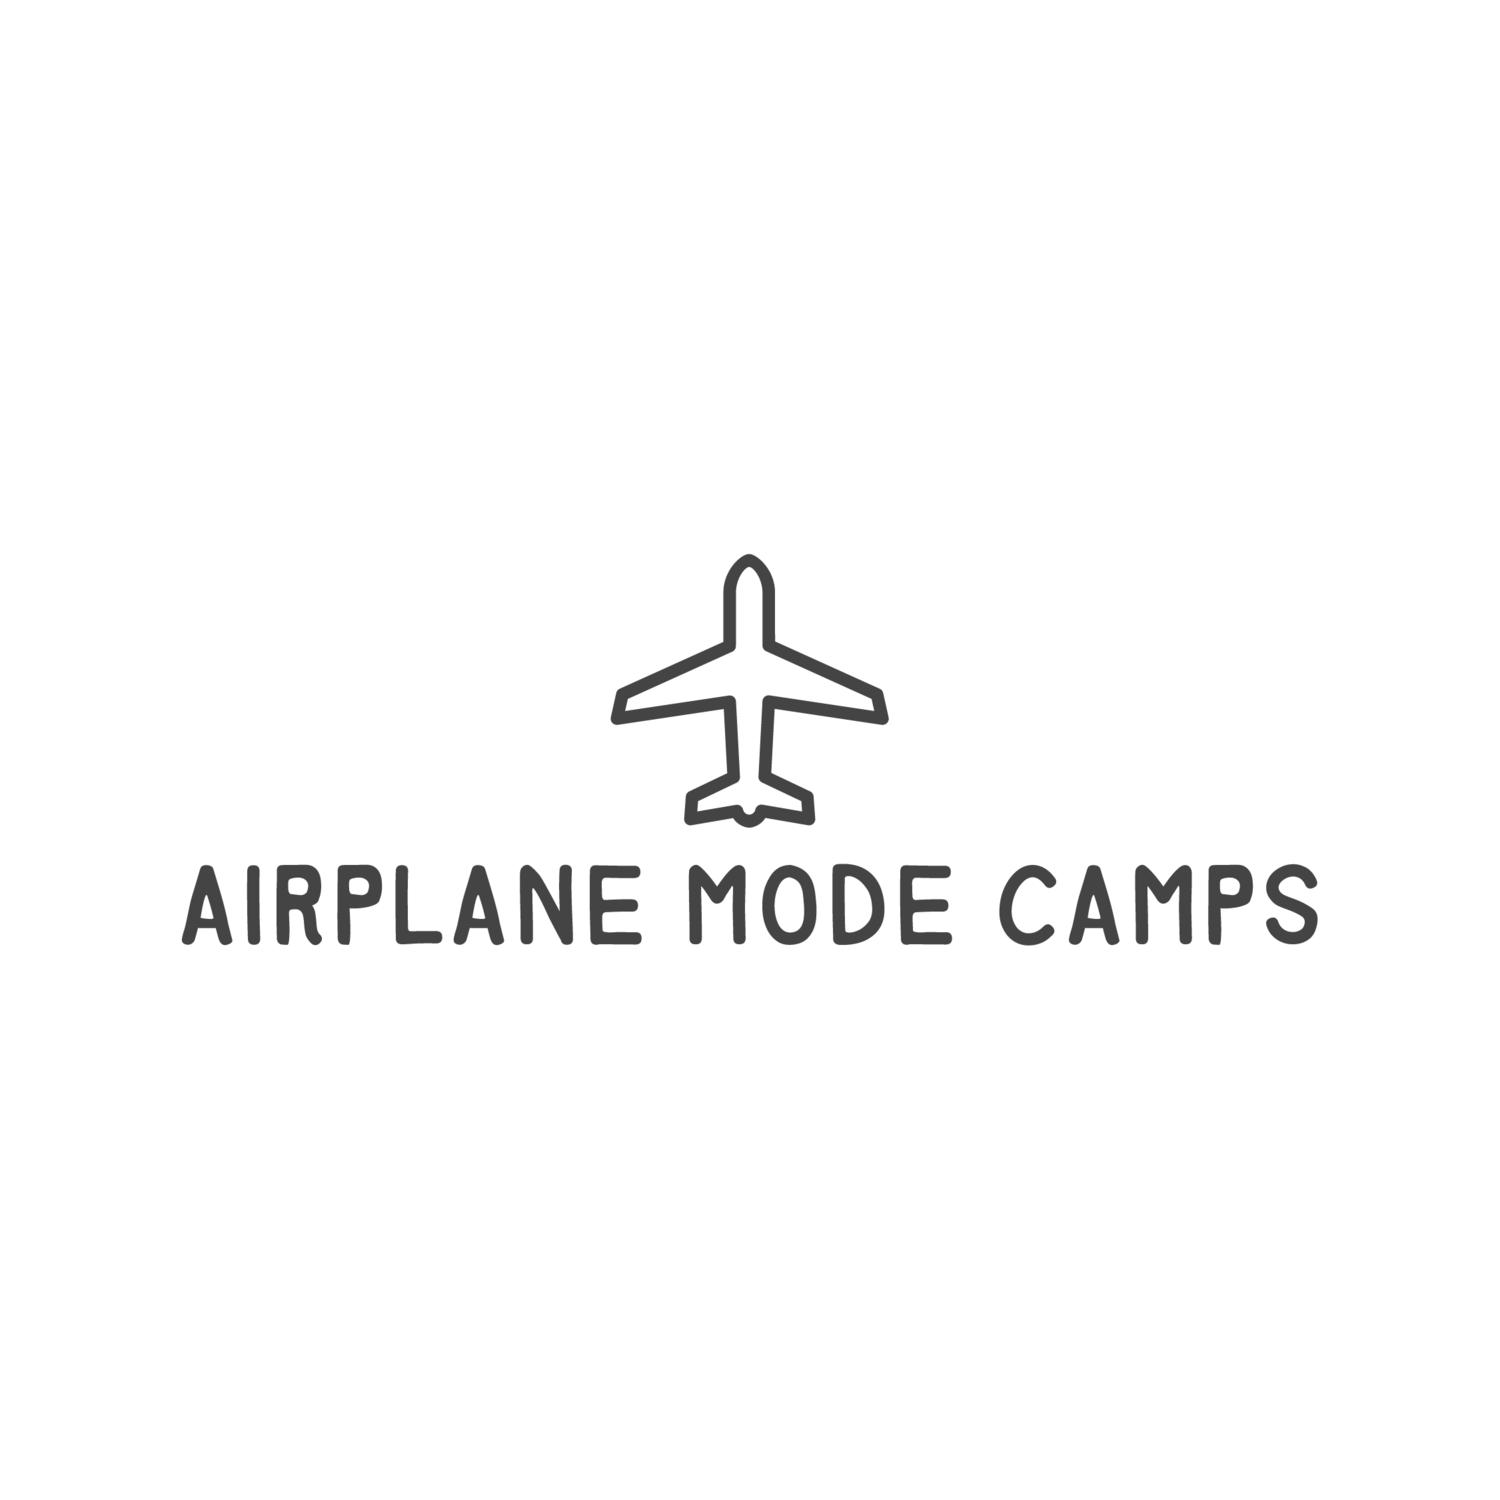 Airplane Mode Camps